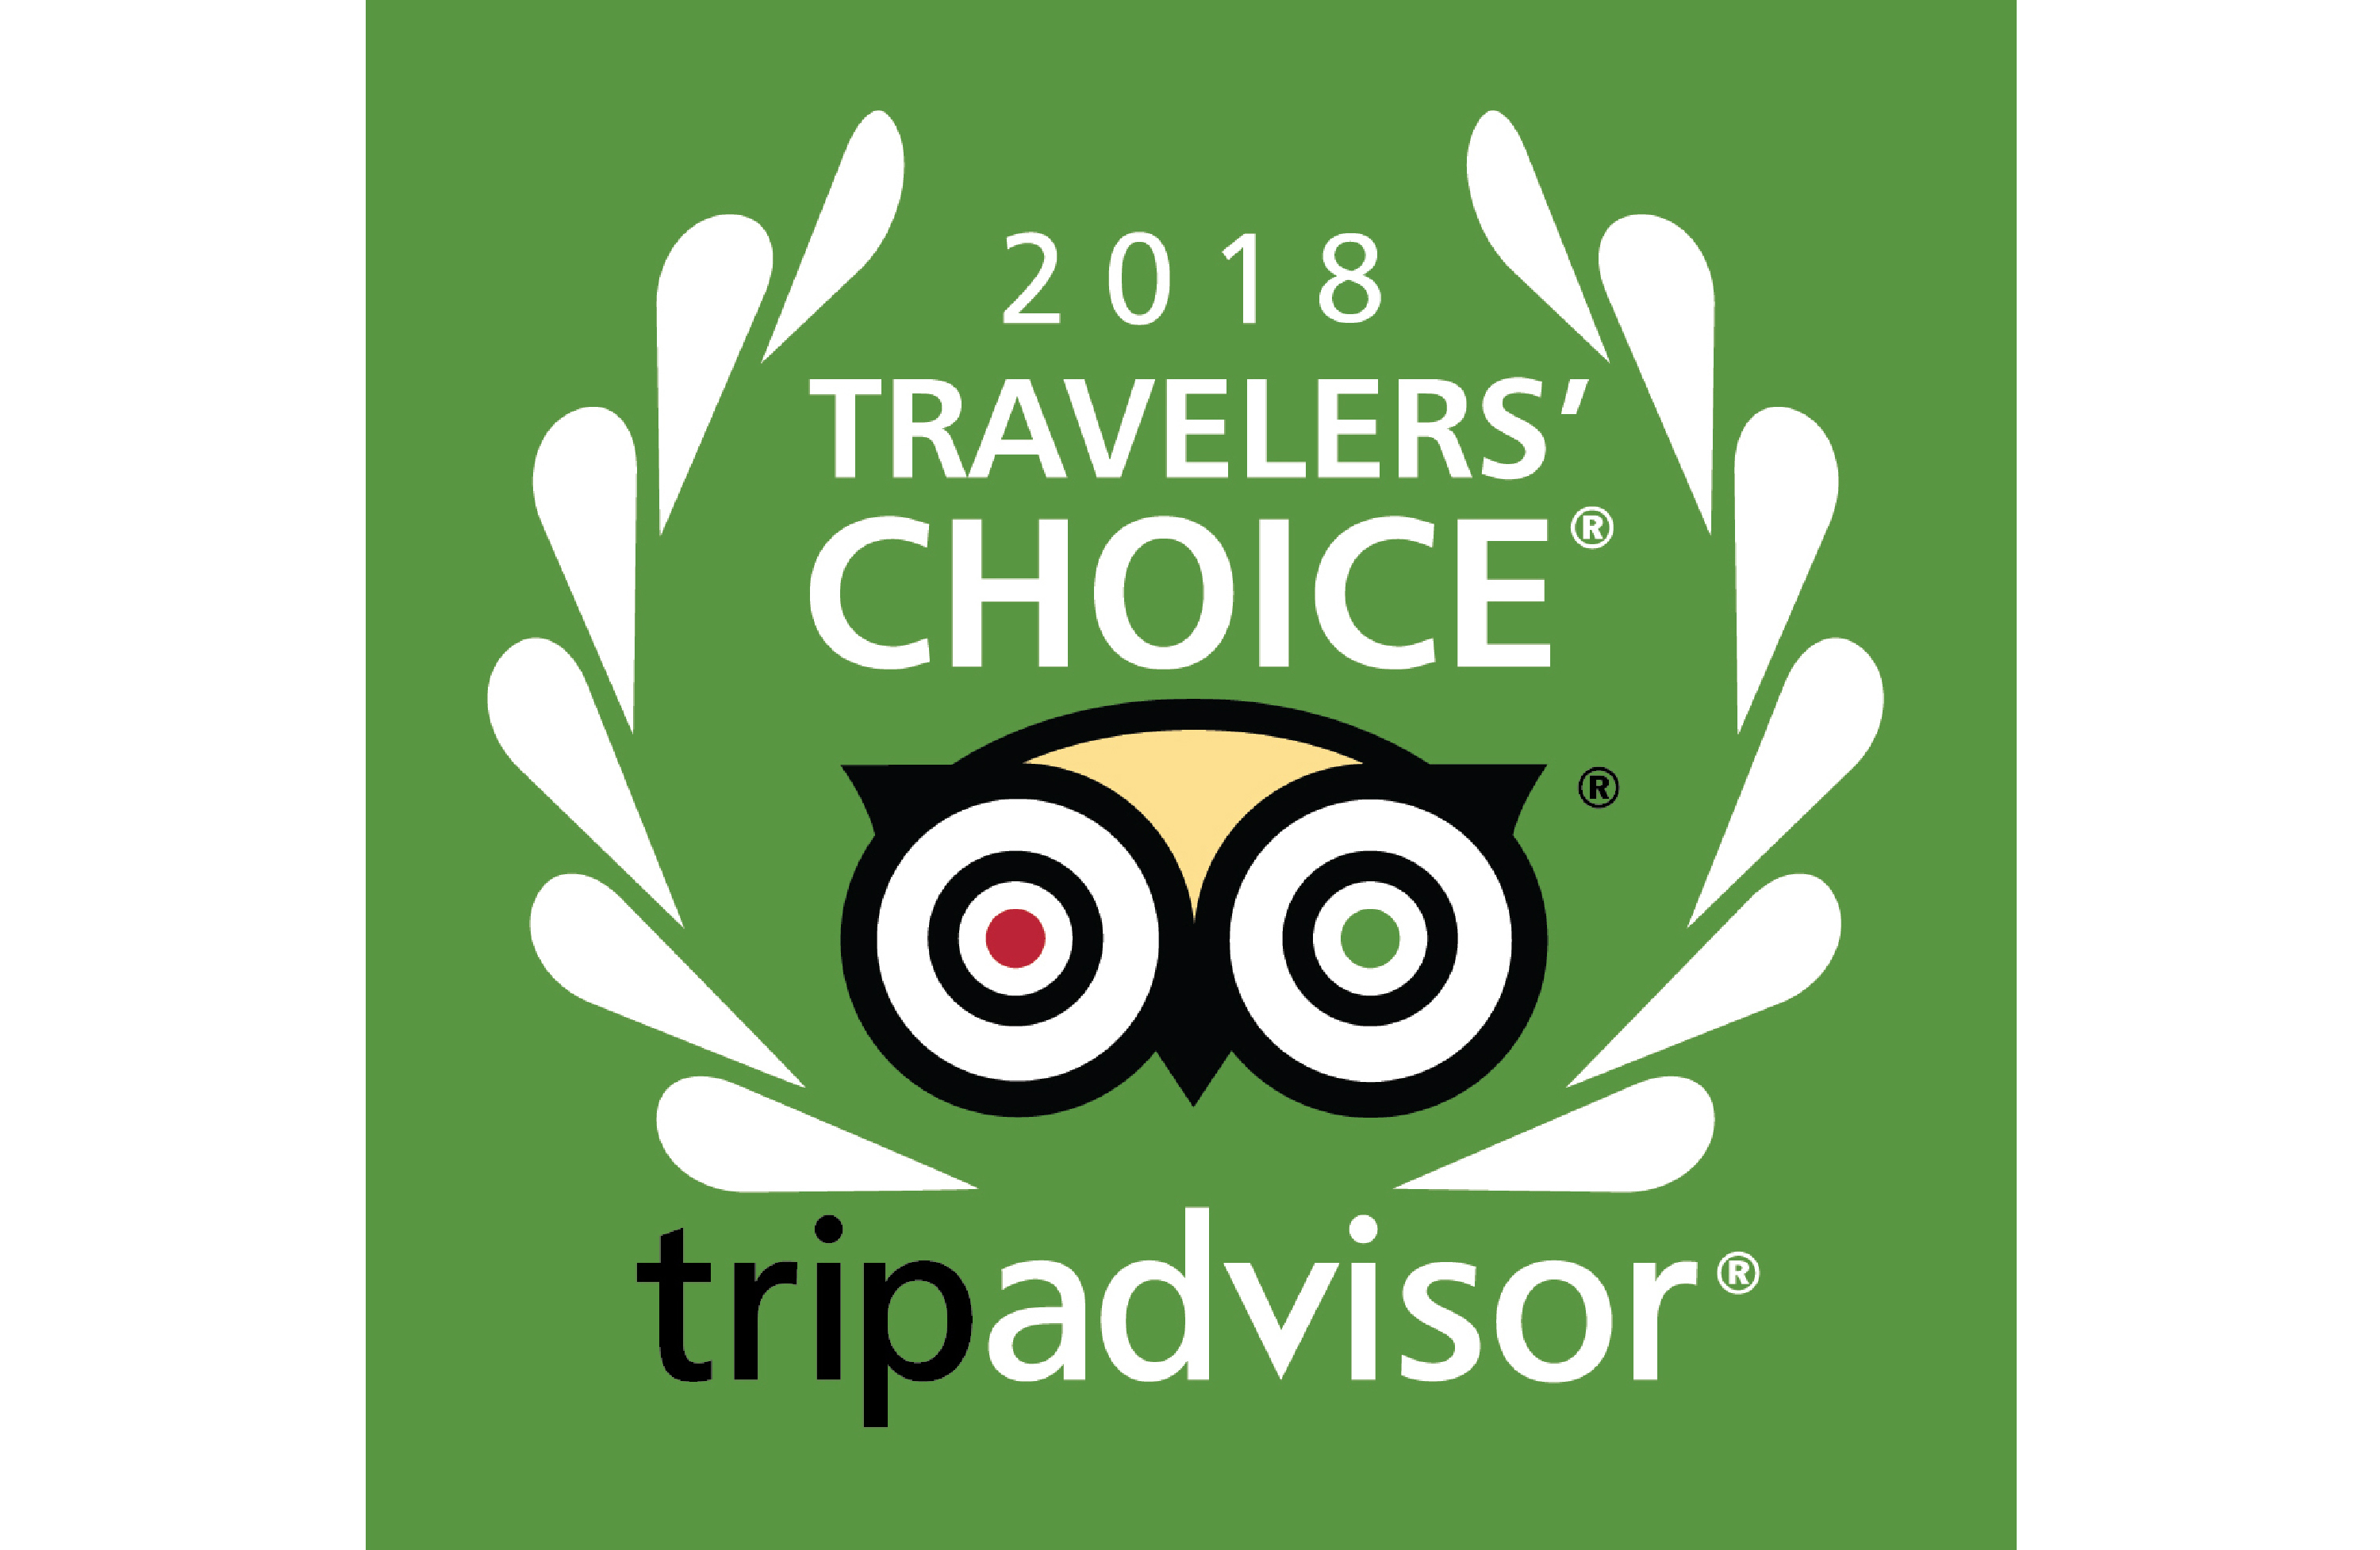 Traveler's Choice Award 2018